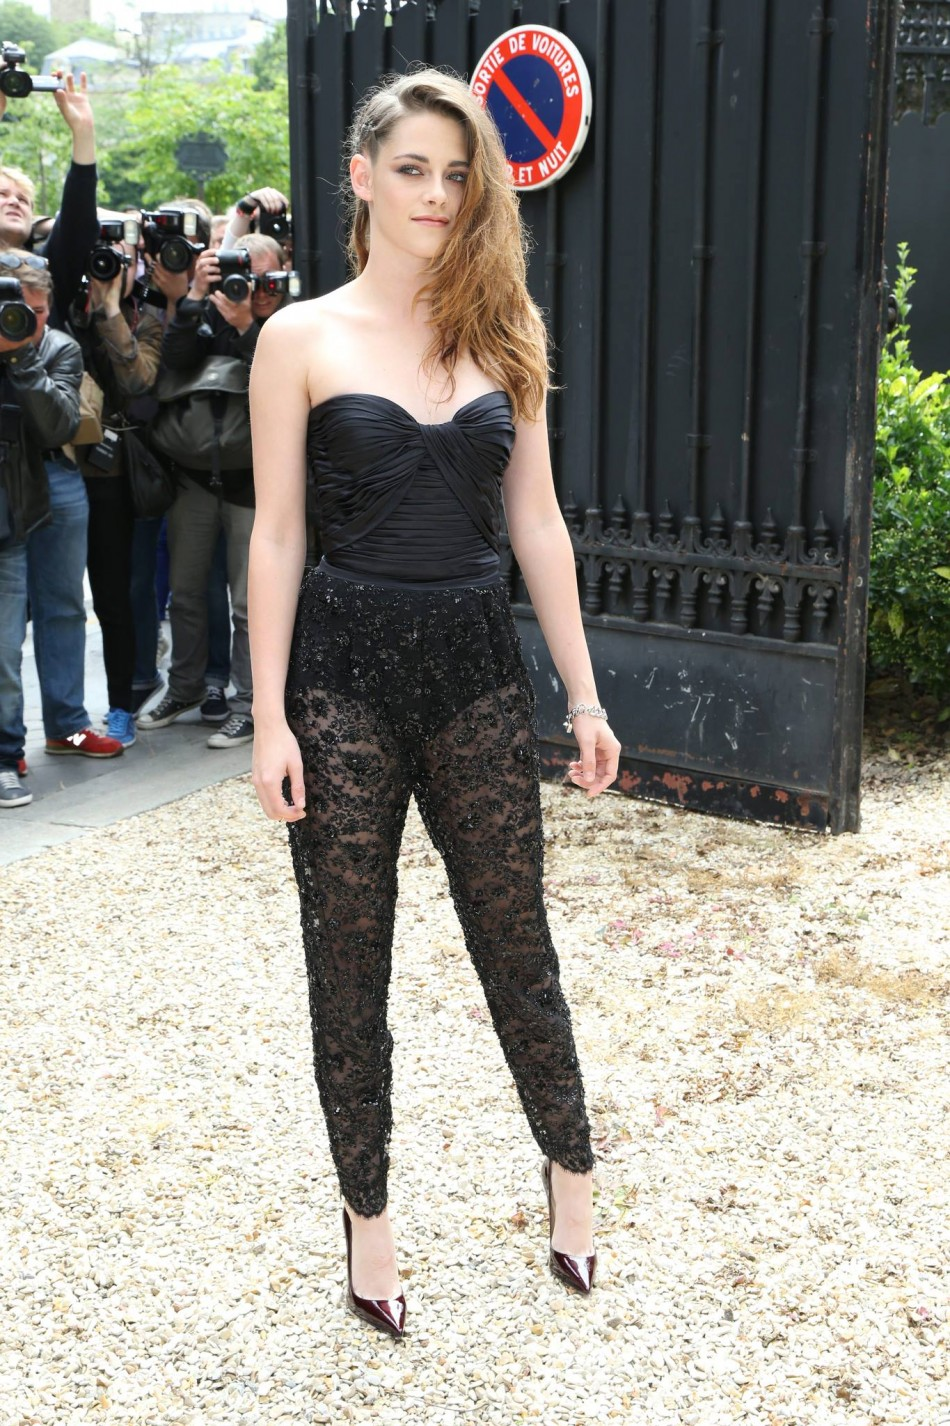 Actress Kristen Stewart at Zuhair Murad fashion show in Paris